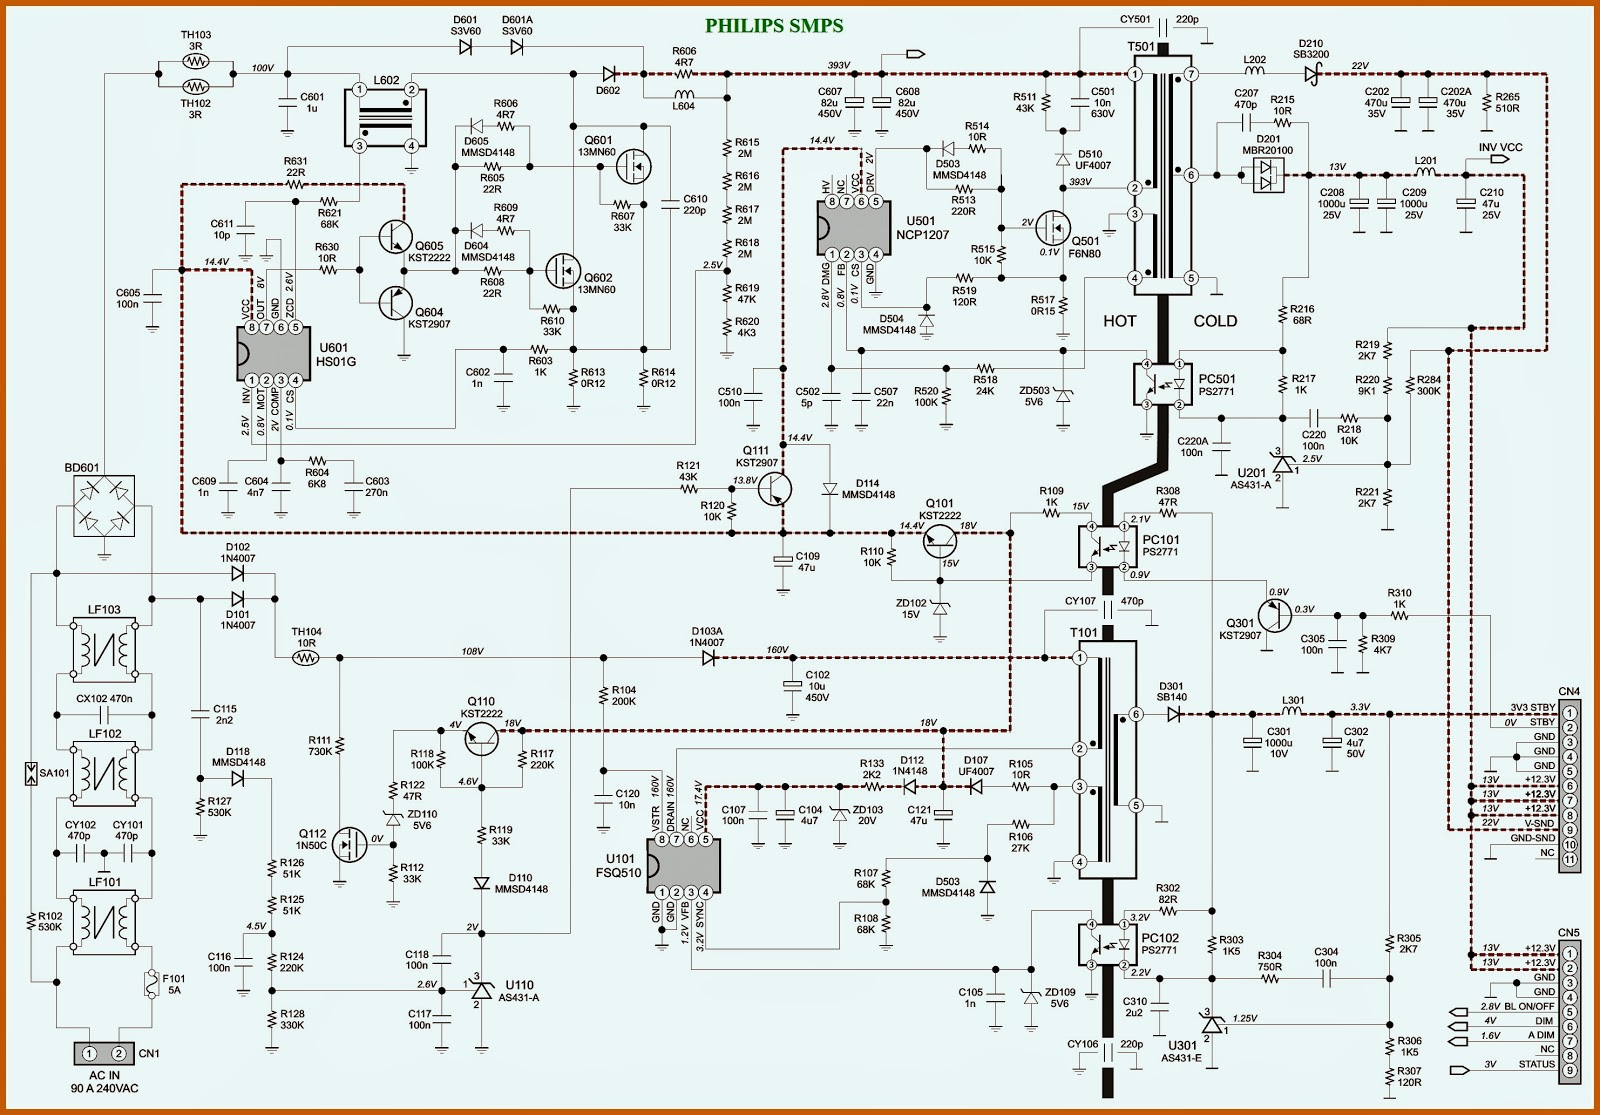 toshiba led tv schematic diagram schematic wiring diagram rh 14 fhuig chamas naturatelier de toshiba 23pb200 specification toshiba lcd tv schematic diagram